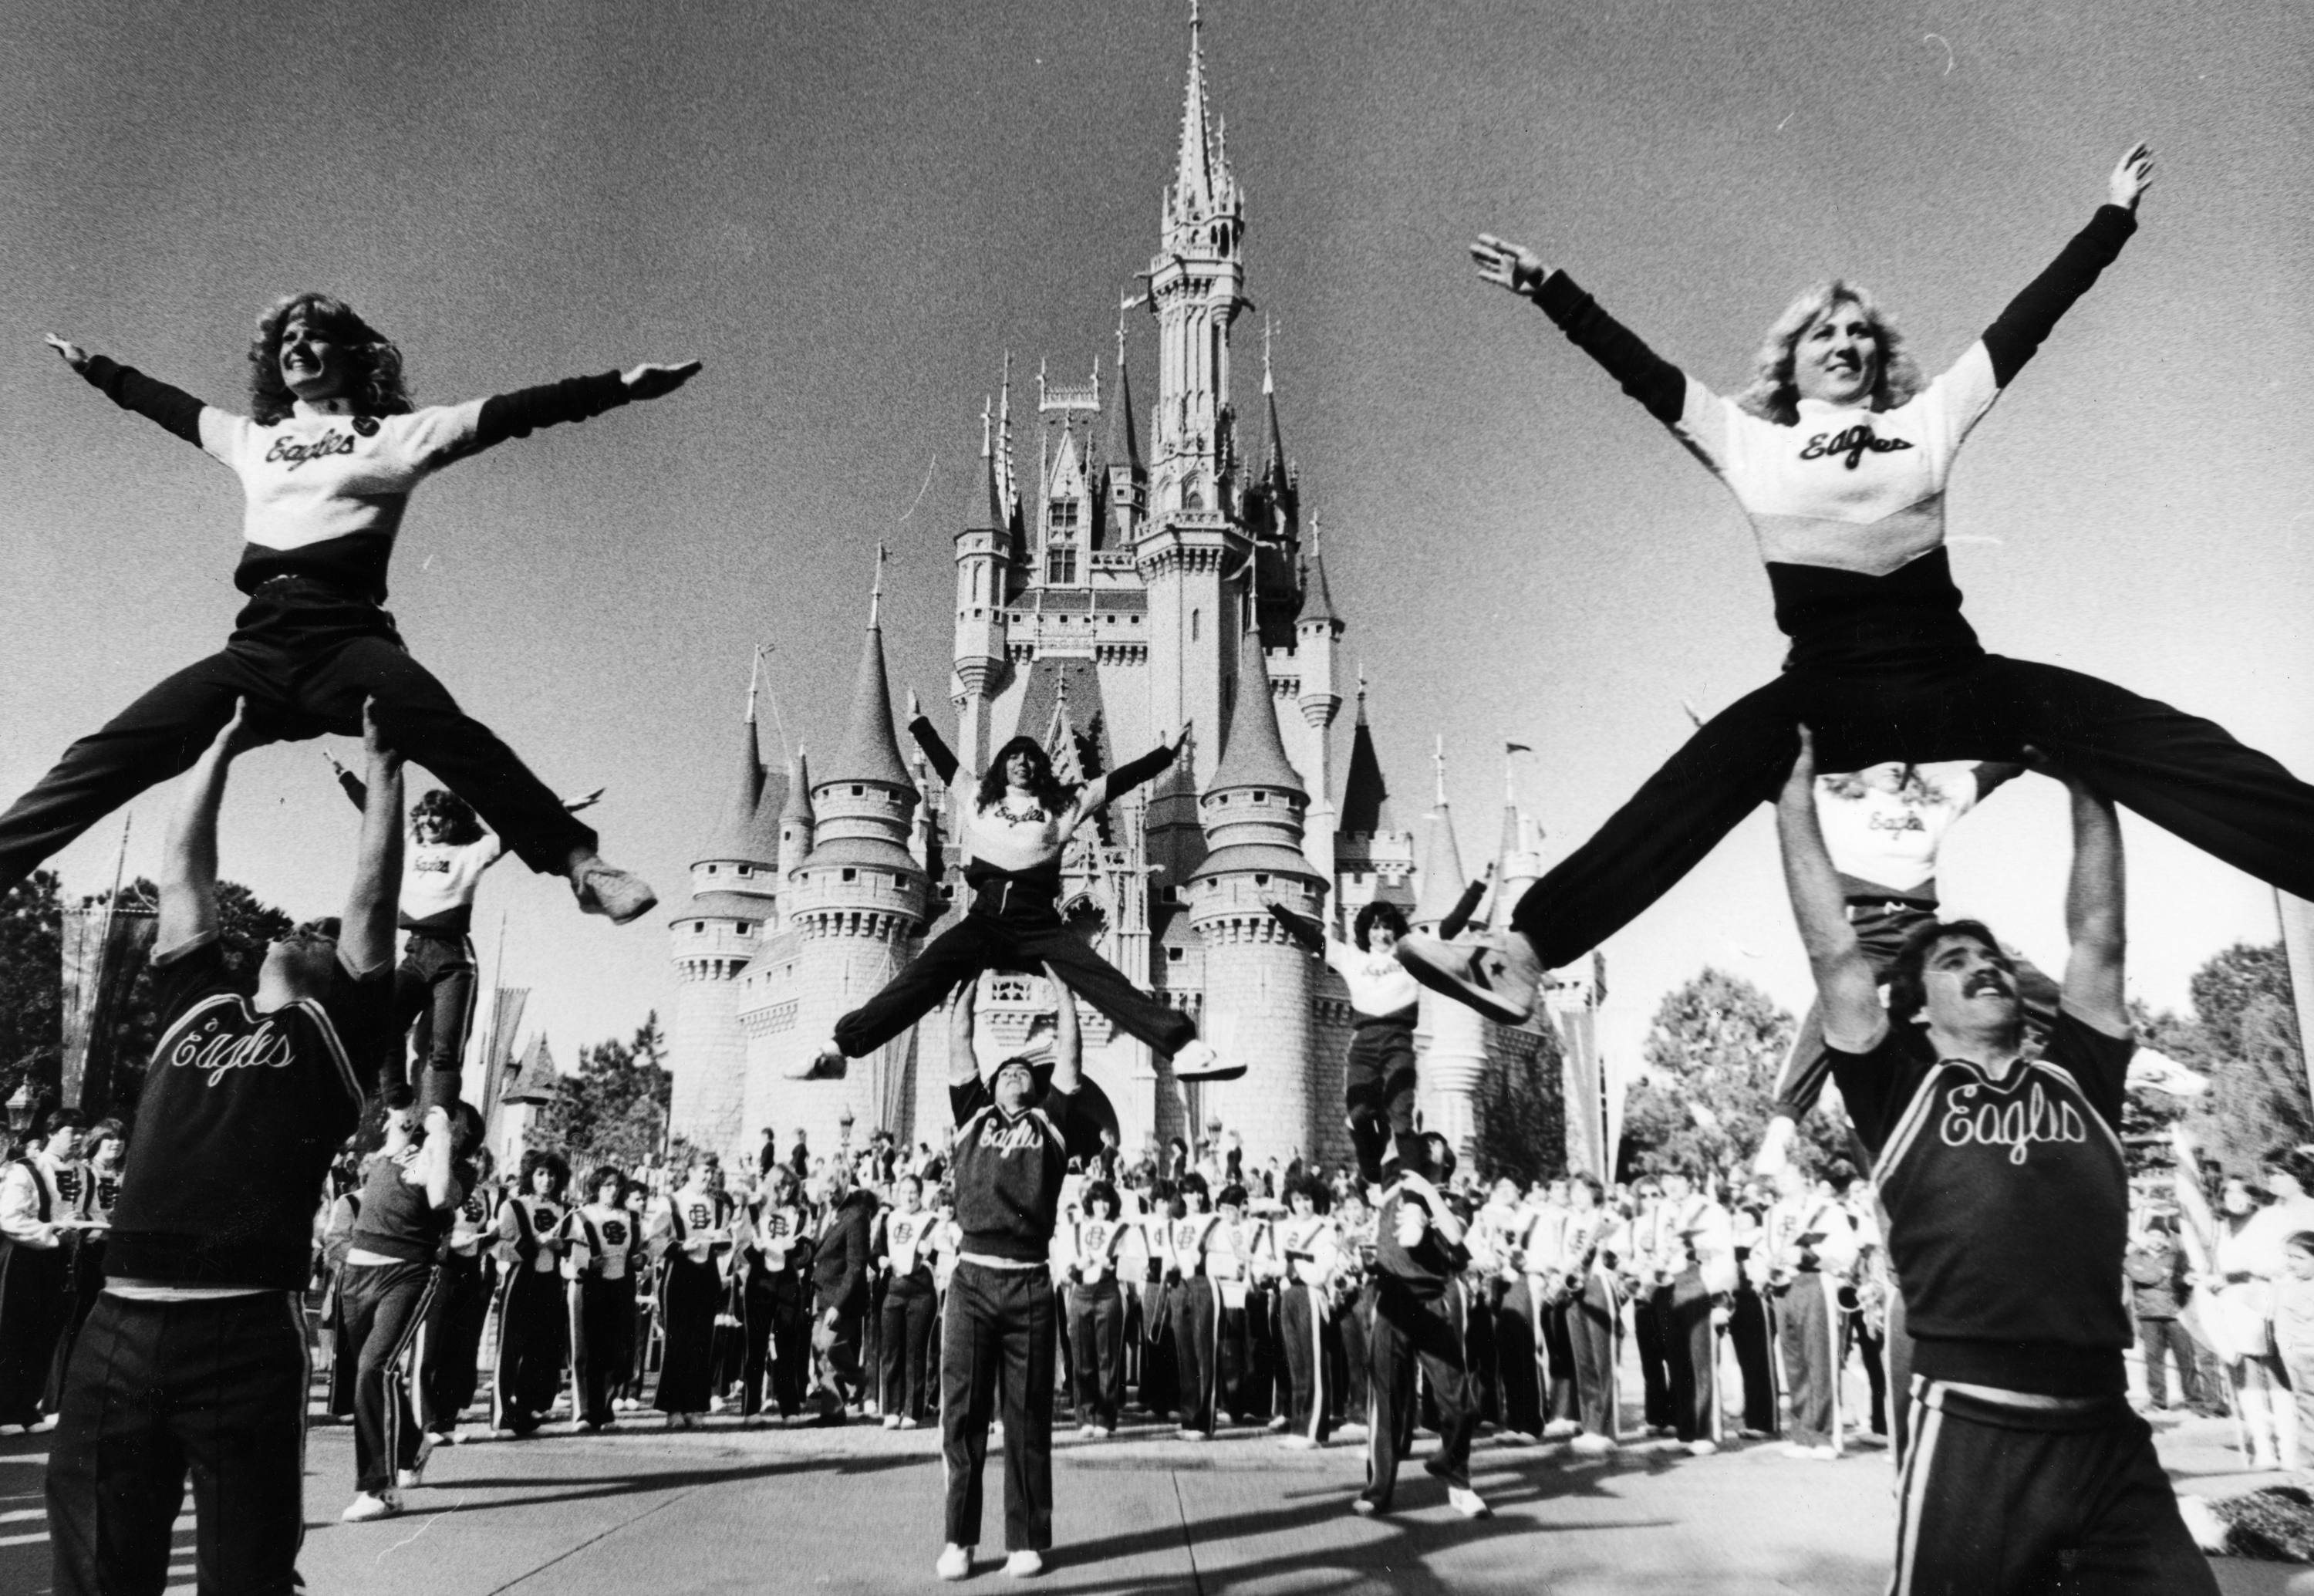 Slide 30 of 33: ORLANDO, FL - DECEMBER 1: Boston College Cheerleaders along with the BC band perform out in front of the Cinderella Castle at in the Magic Kingdom at Walt Disney World in Orlando, December 1982. BC was in town to play Auburn in the Tangerine Bowl. (Photo by John Tlumacki/The Boston Globe via Getty Images)